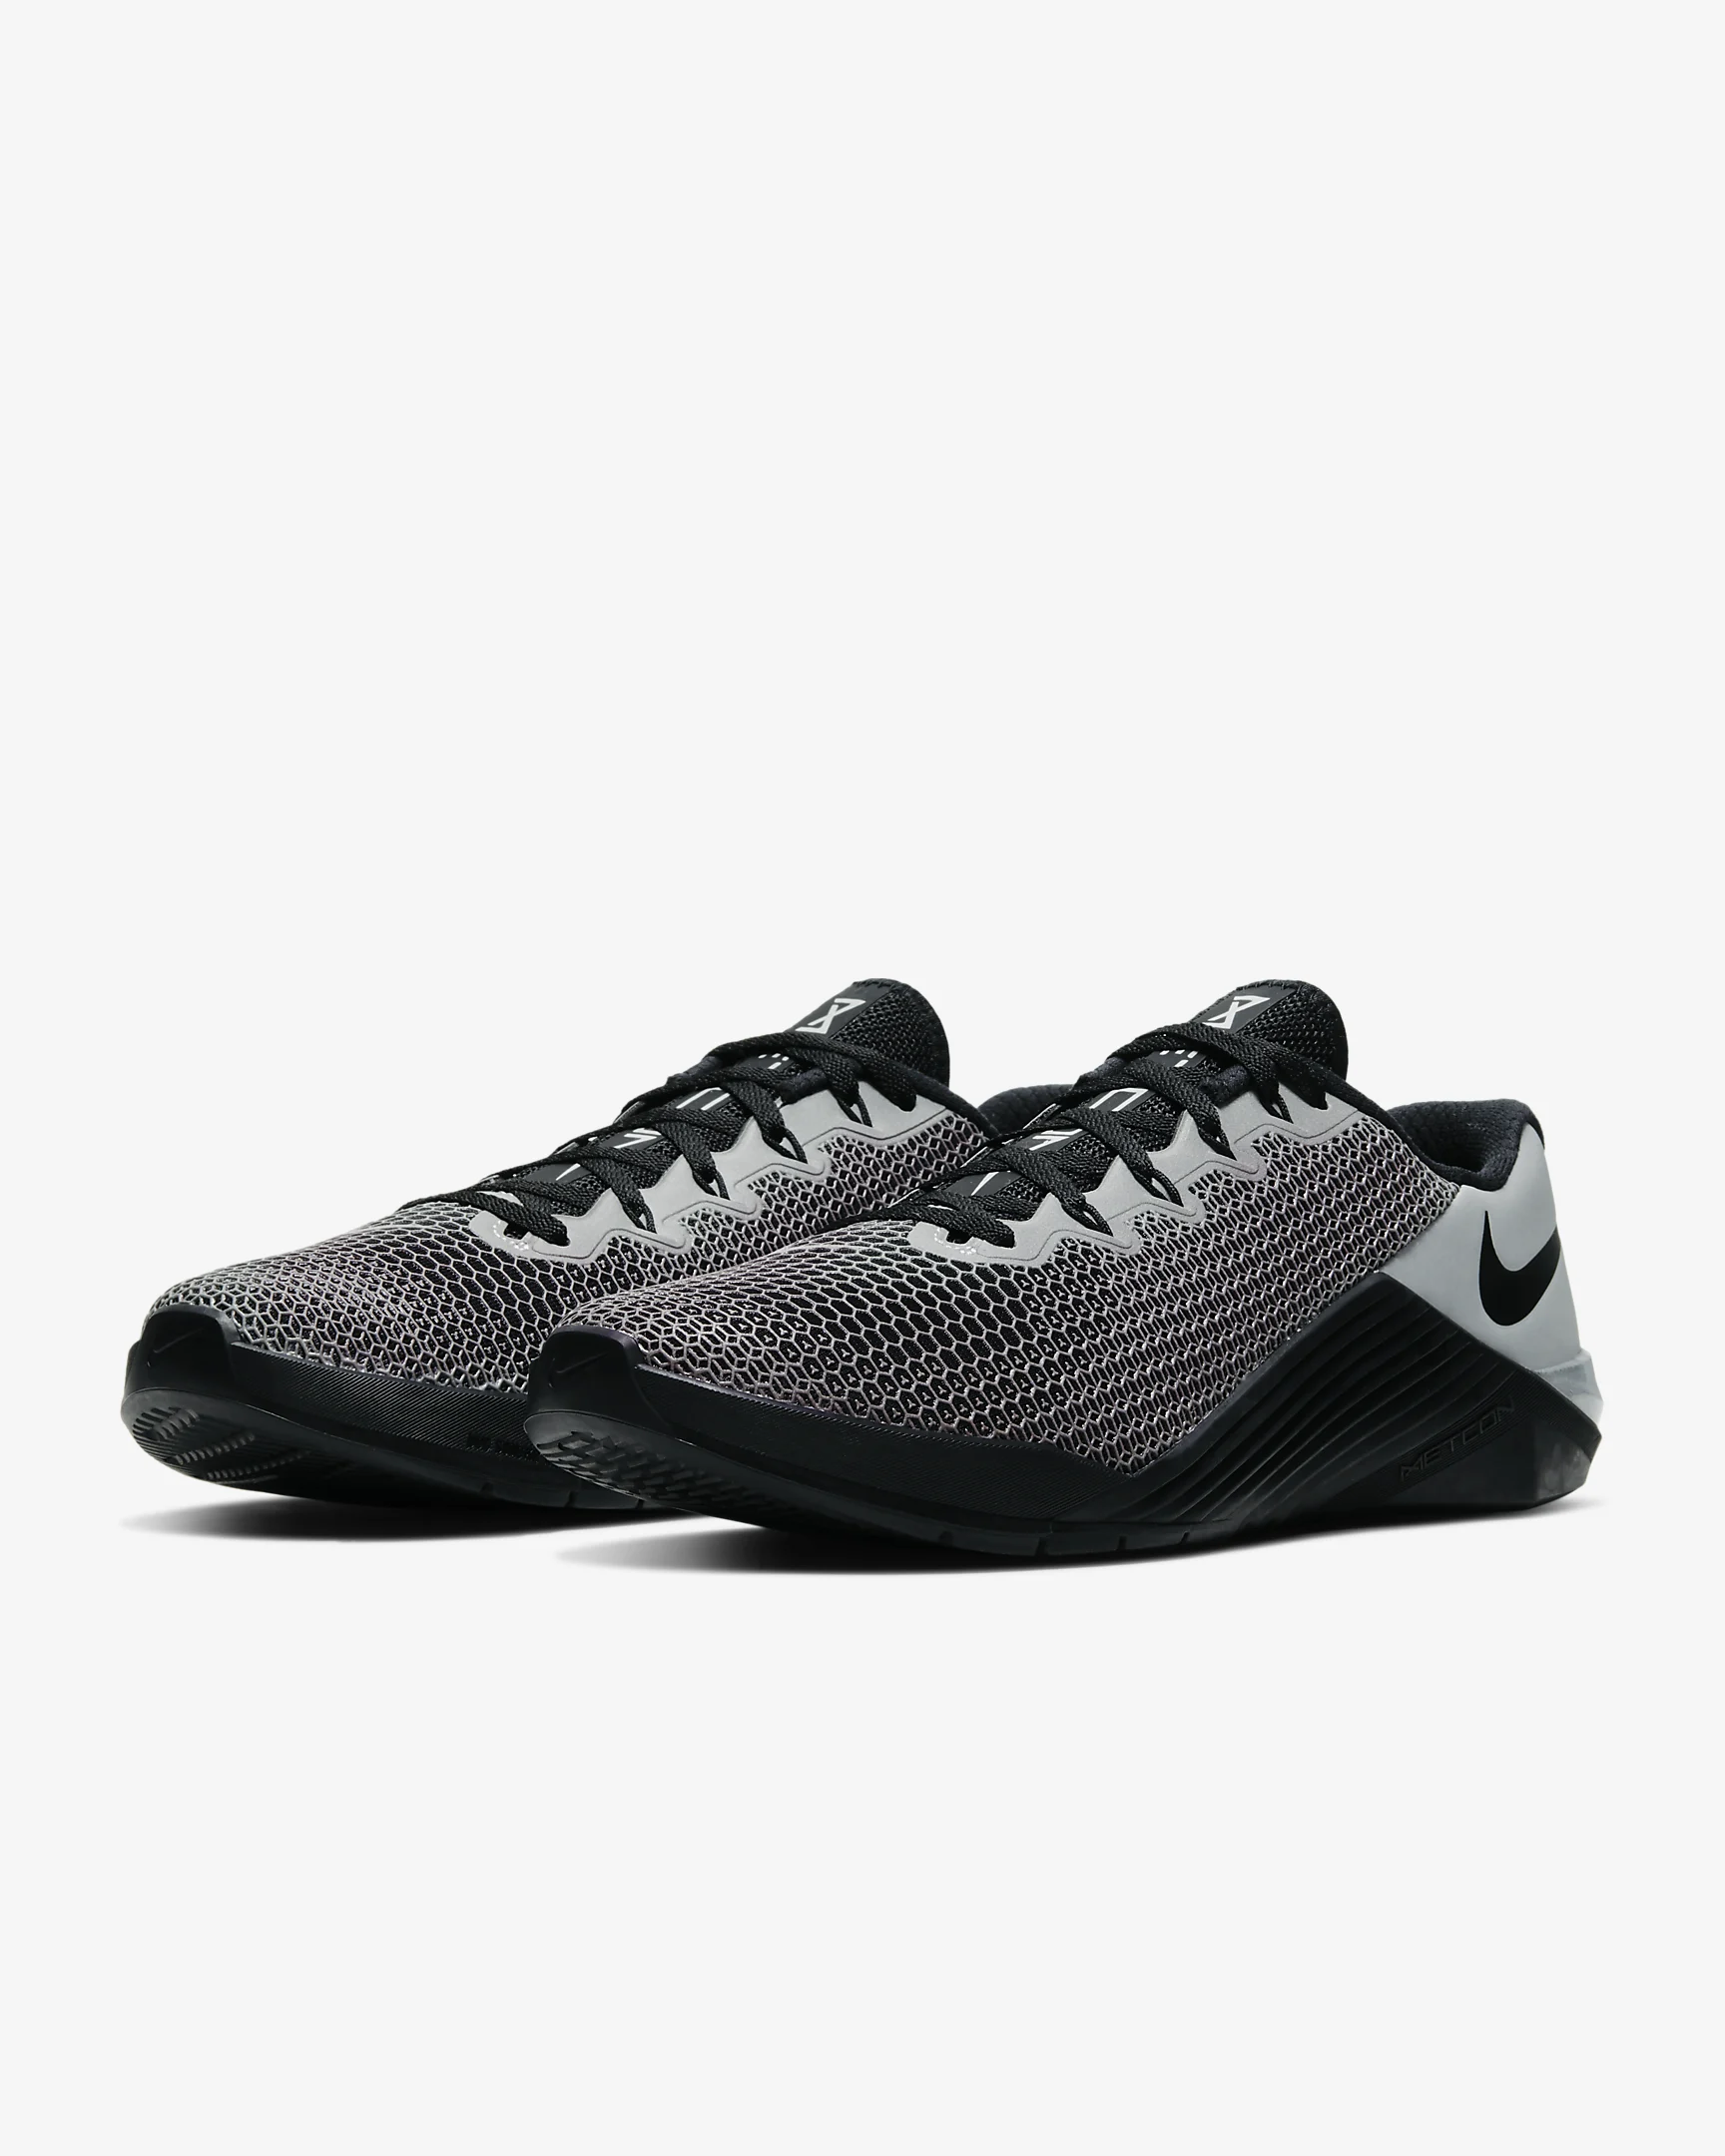 Brand New Men/'s Nike Metcon 5 Slip-On Athletic Training SneakersBlack /& Blue